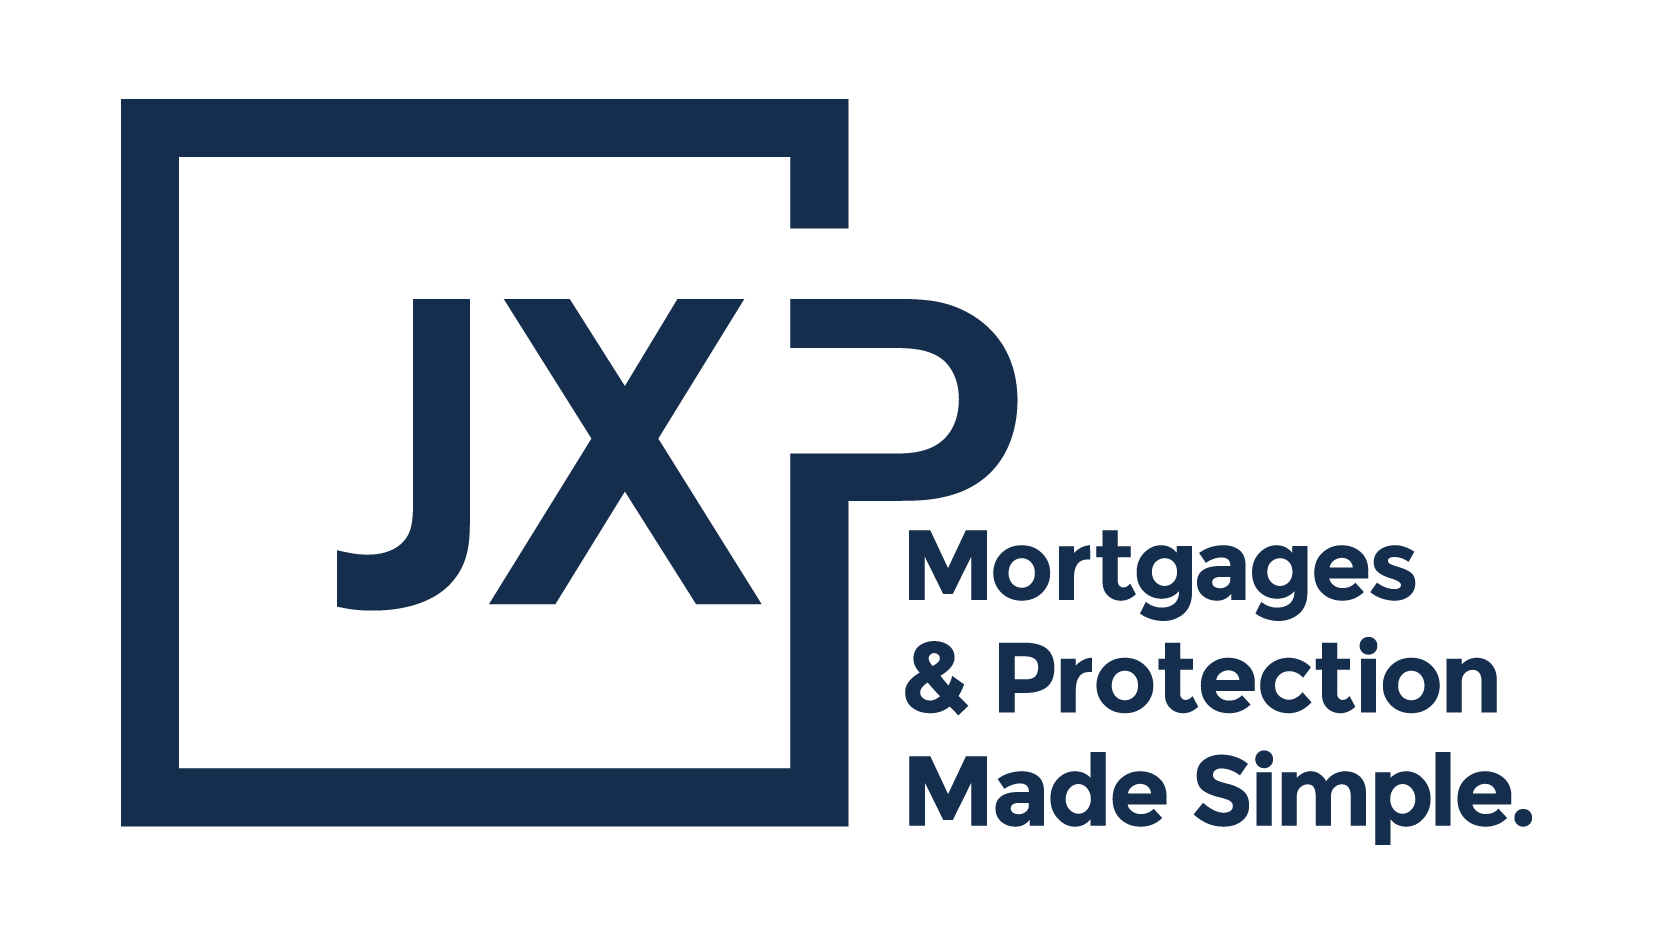 JXPMortgages and Protection Made Simple